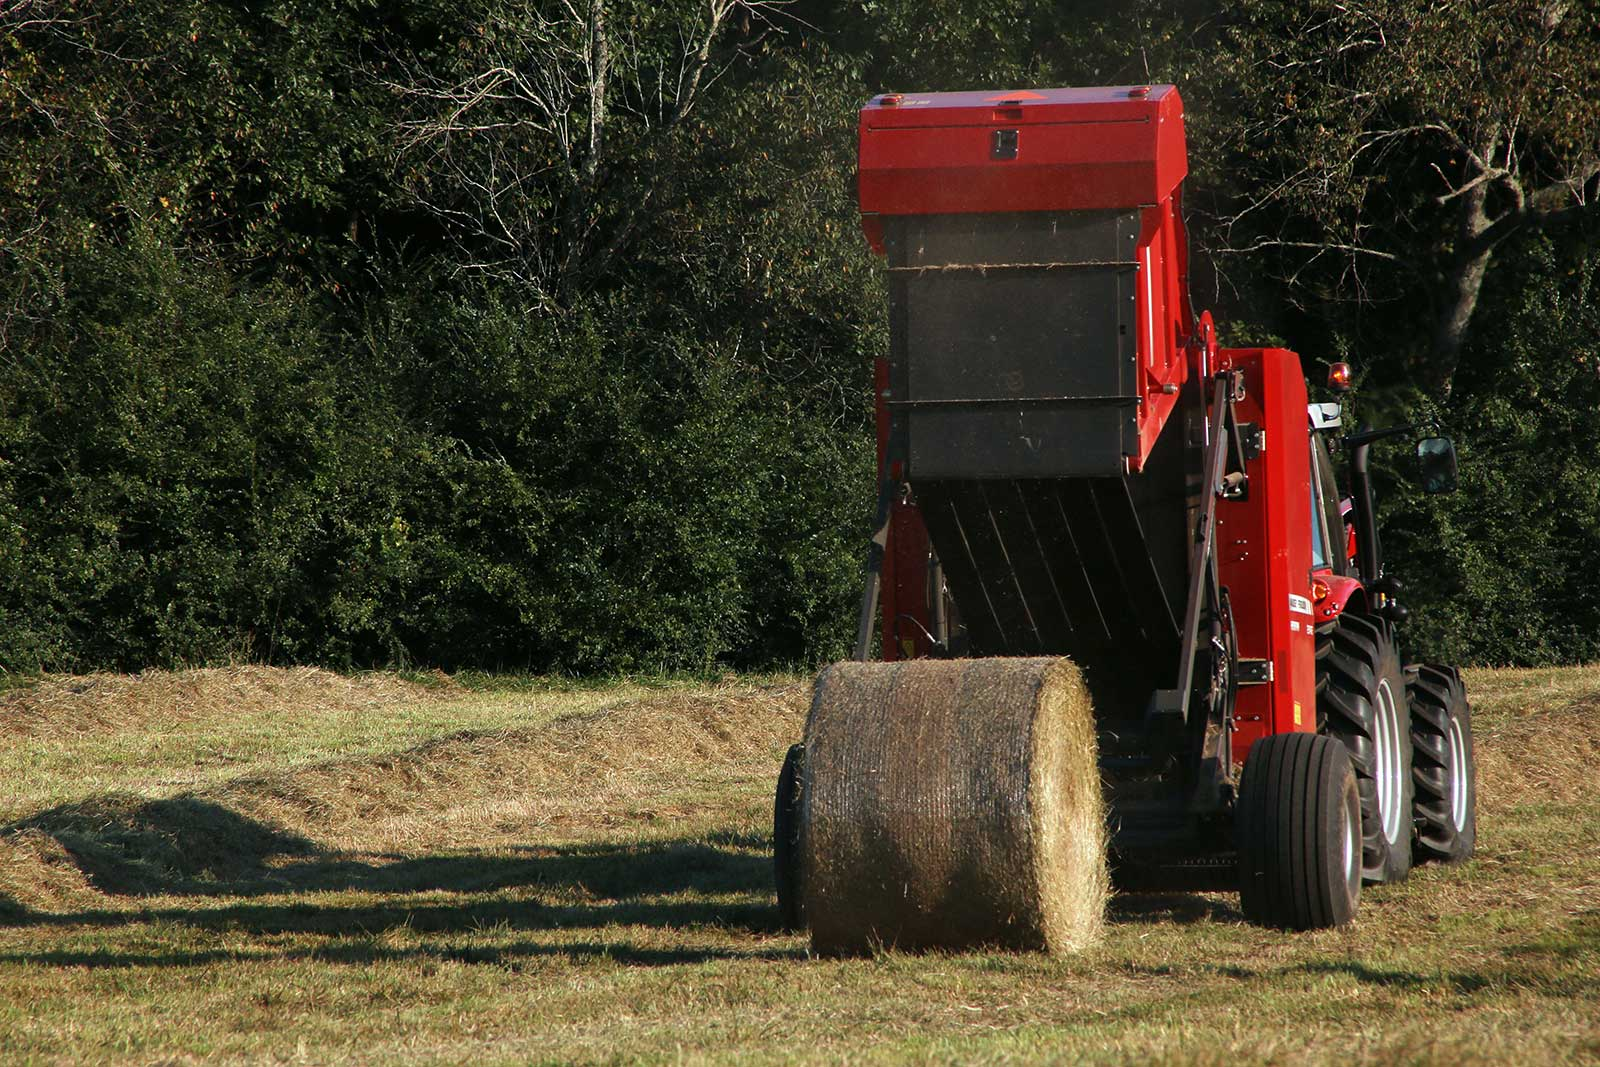 New and used Massey Ferguson 2900 Series round balers for sale at Hanlon Ag Centre in Lethbridge, Alberta, Canada. Compare model MF 2946 and MF 2946A 4x6 balers or MF 2956 and MF 2956A 5x6 balers. For hay producers, livestock and dairy farmers. 5x6 baler